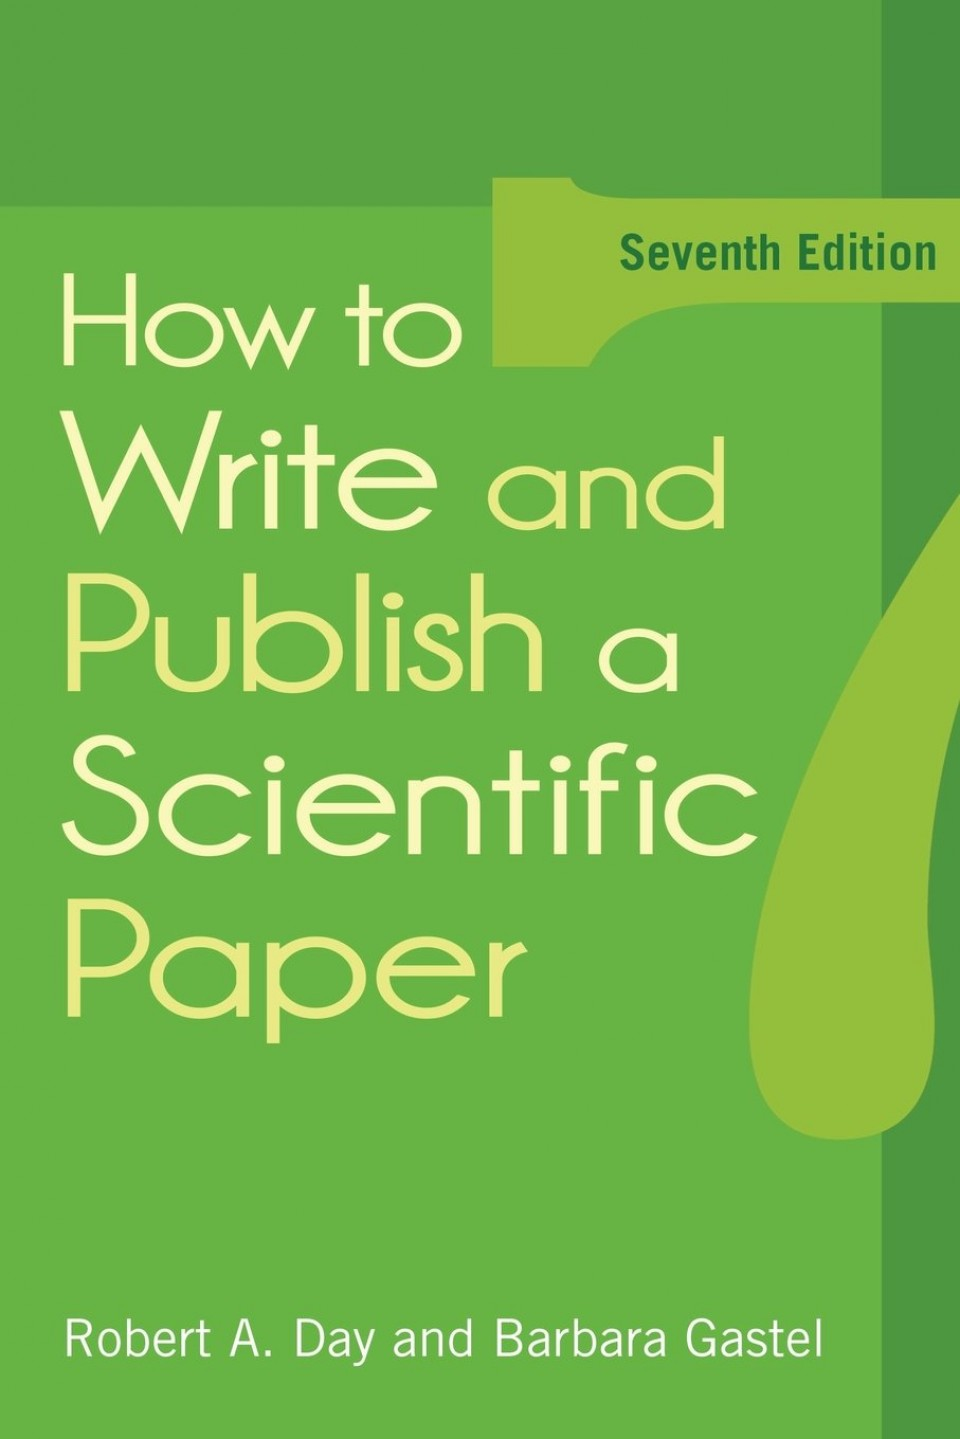 001 Research Paper 61akxkcqzal How To Write And Publish Scientific Surprising A Pdf 960